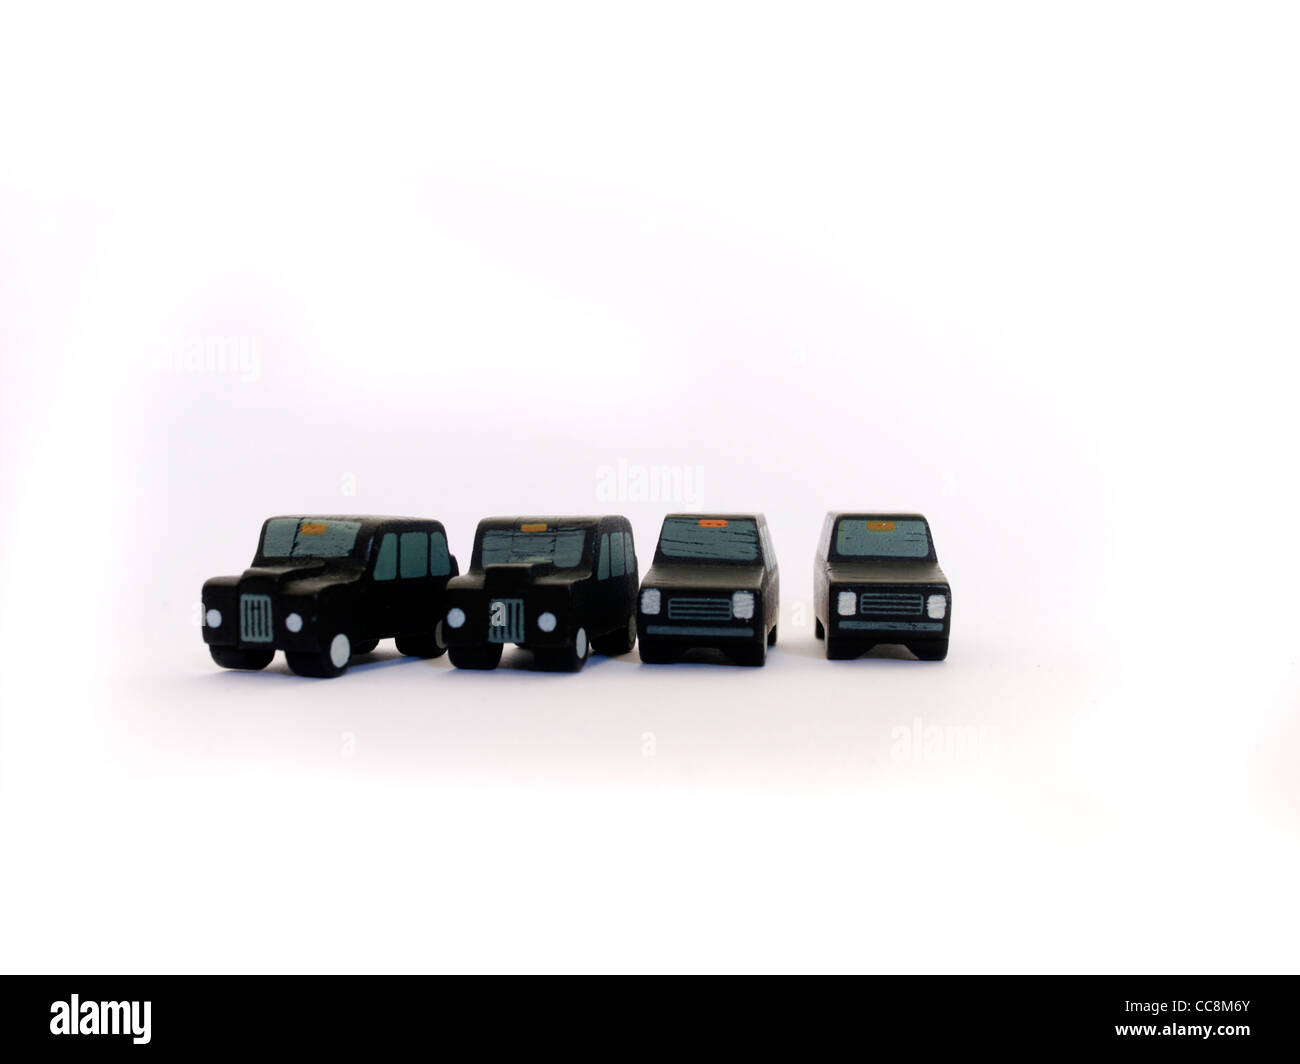 London taxis - Stock Image